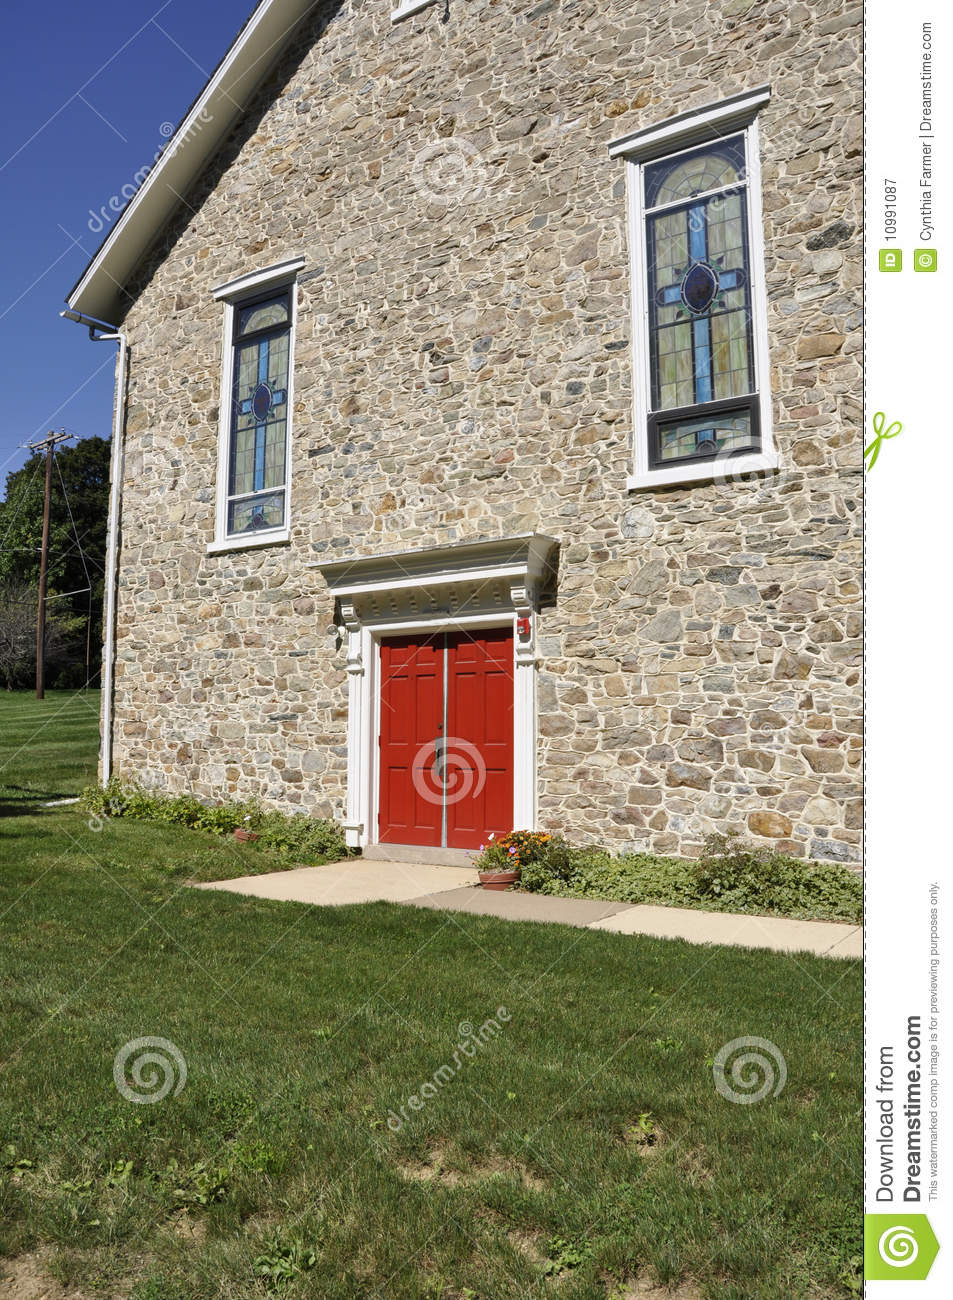 Red Doors Stone : Stone church with red doors stock image